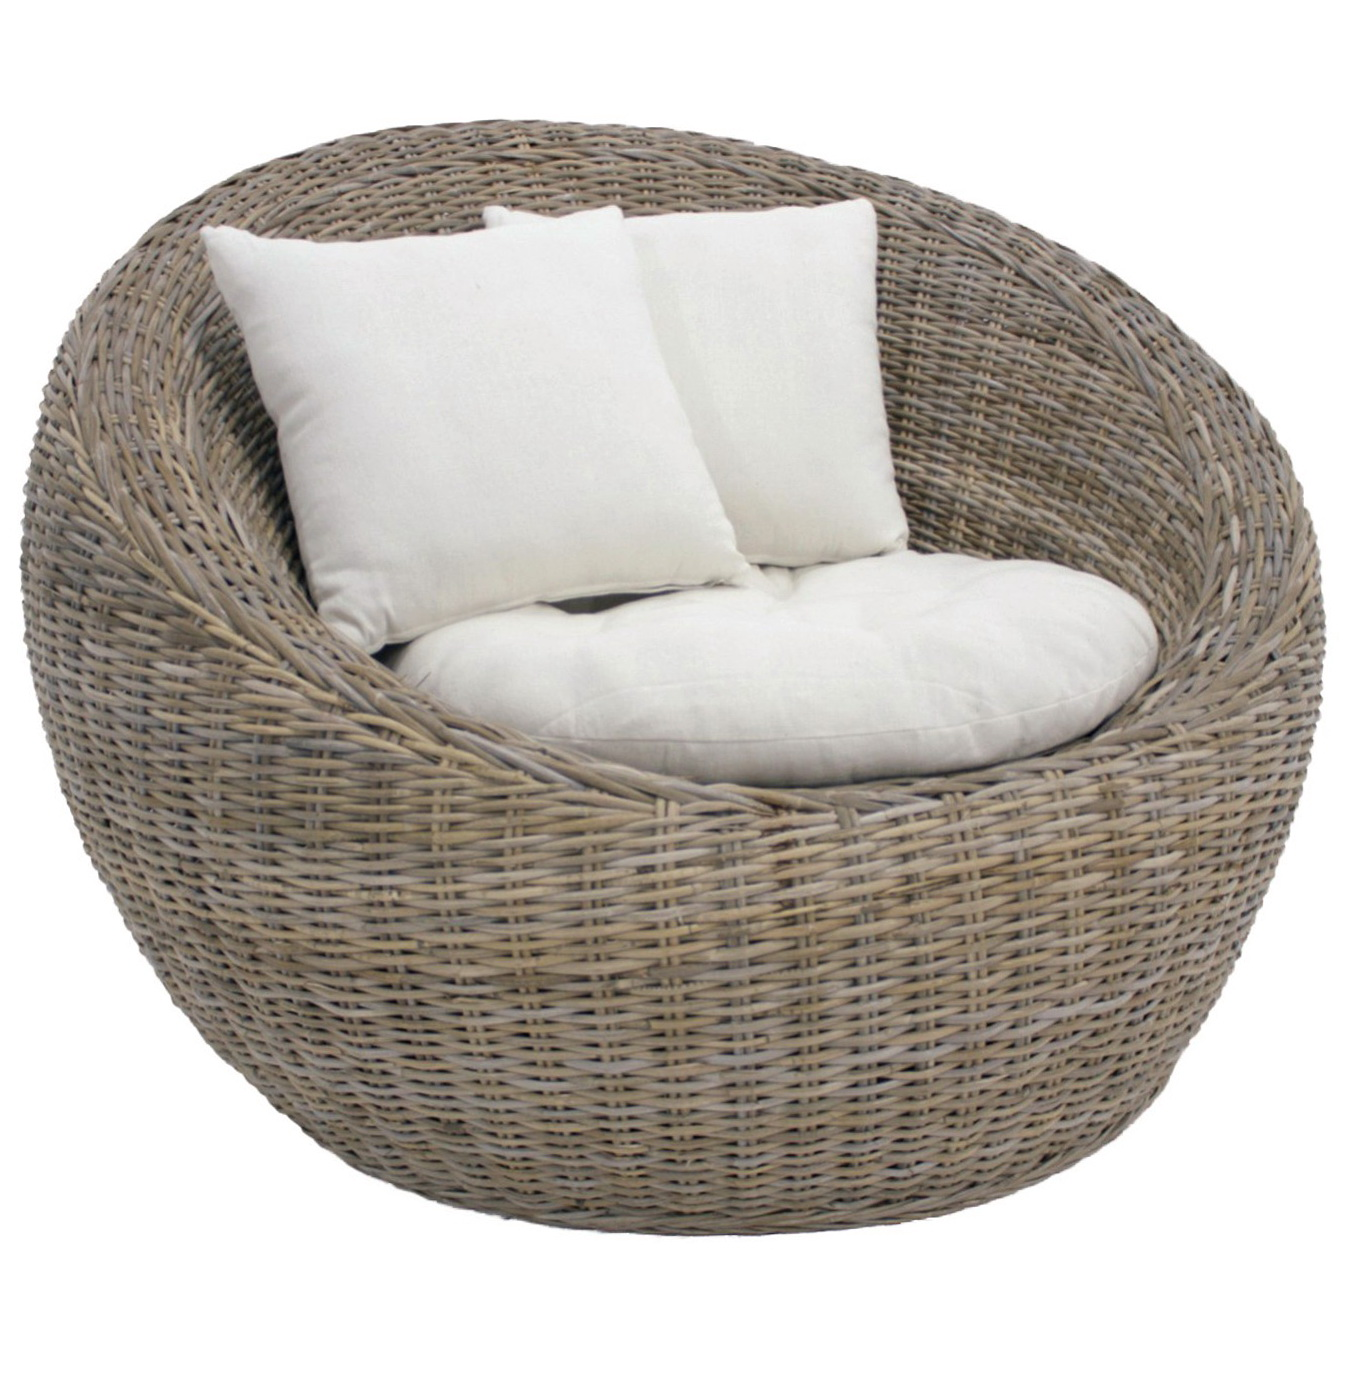 Round Wicker Chair Cushions Home Design Ideas